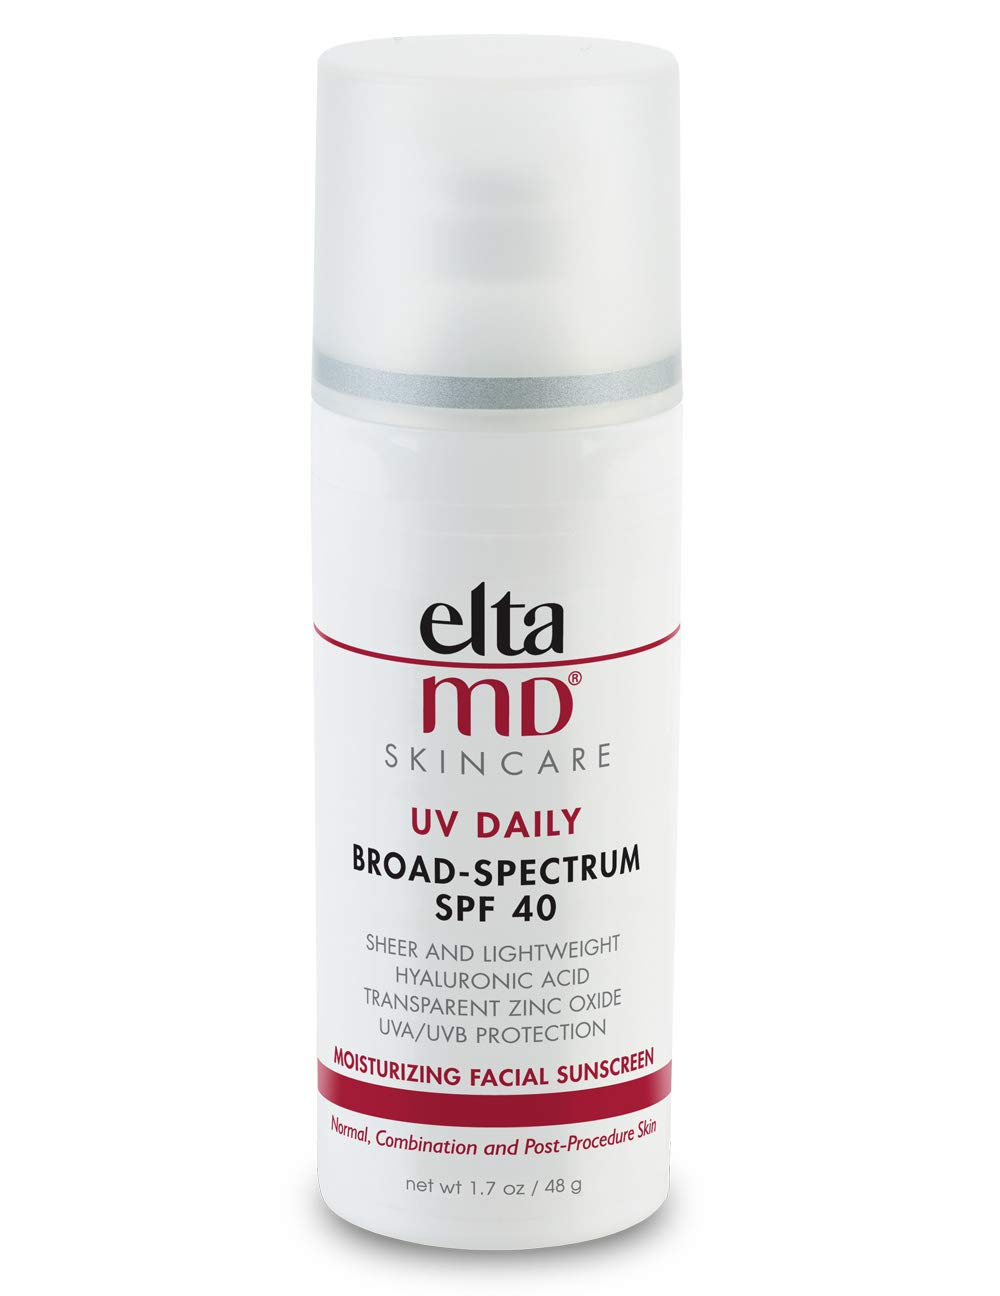 EltaMD UV Daily Facial Sunscreen Broad-Spectrum SPF 40 for Normal and Combination Skin, Dermatologist-Recommended Mineral-Based Zinc Oxide Formula, 1. 7 oz by ELTA MD